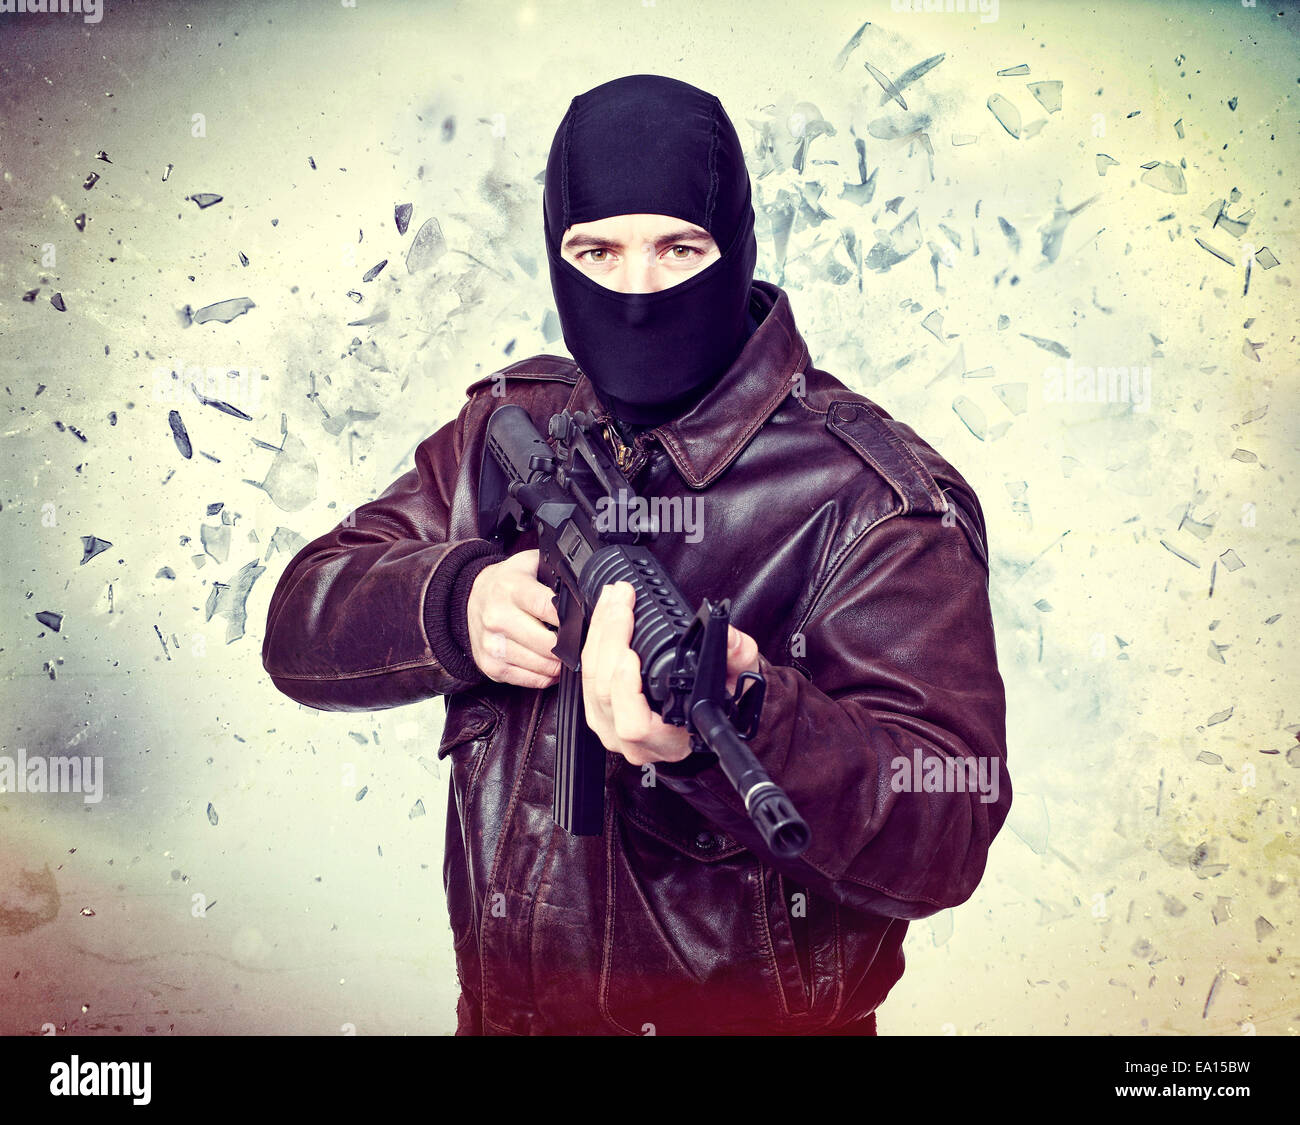 terrorist portrait and background explosion - Stock Image